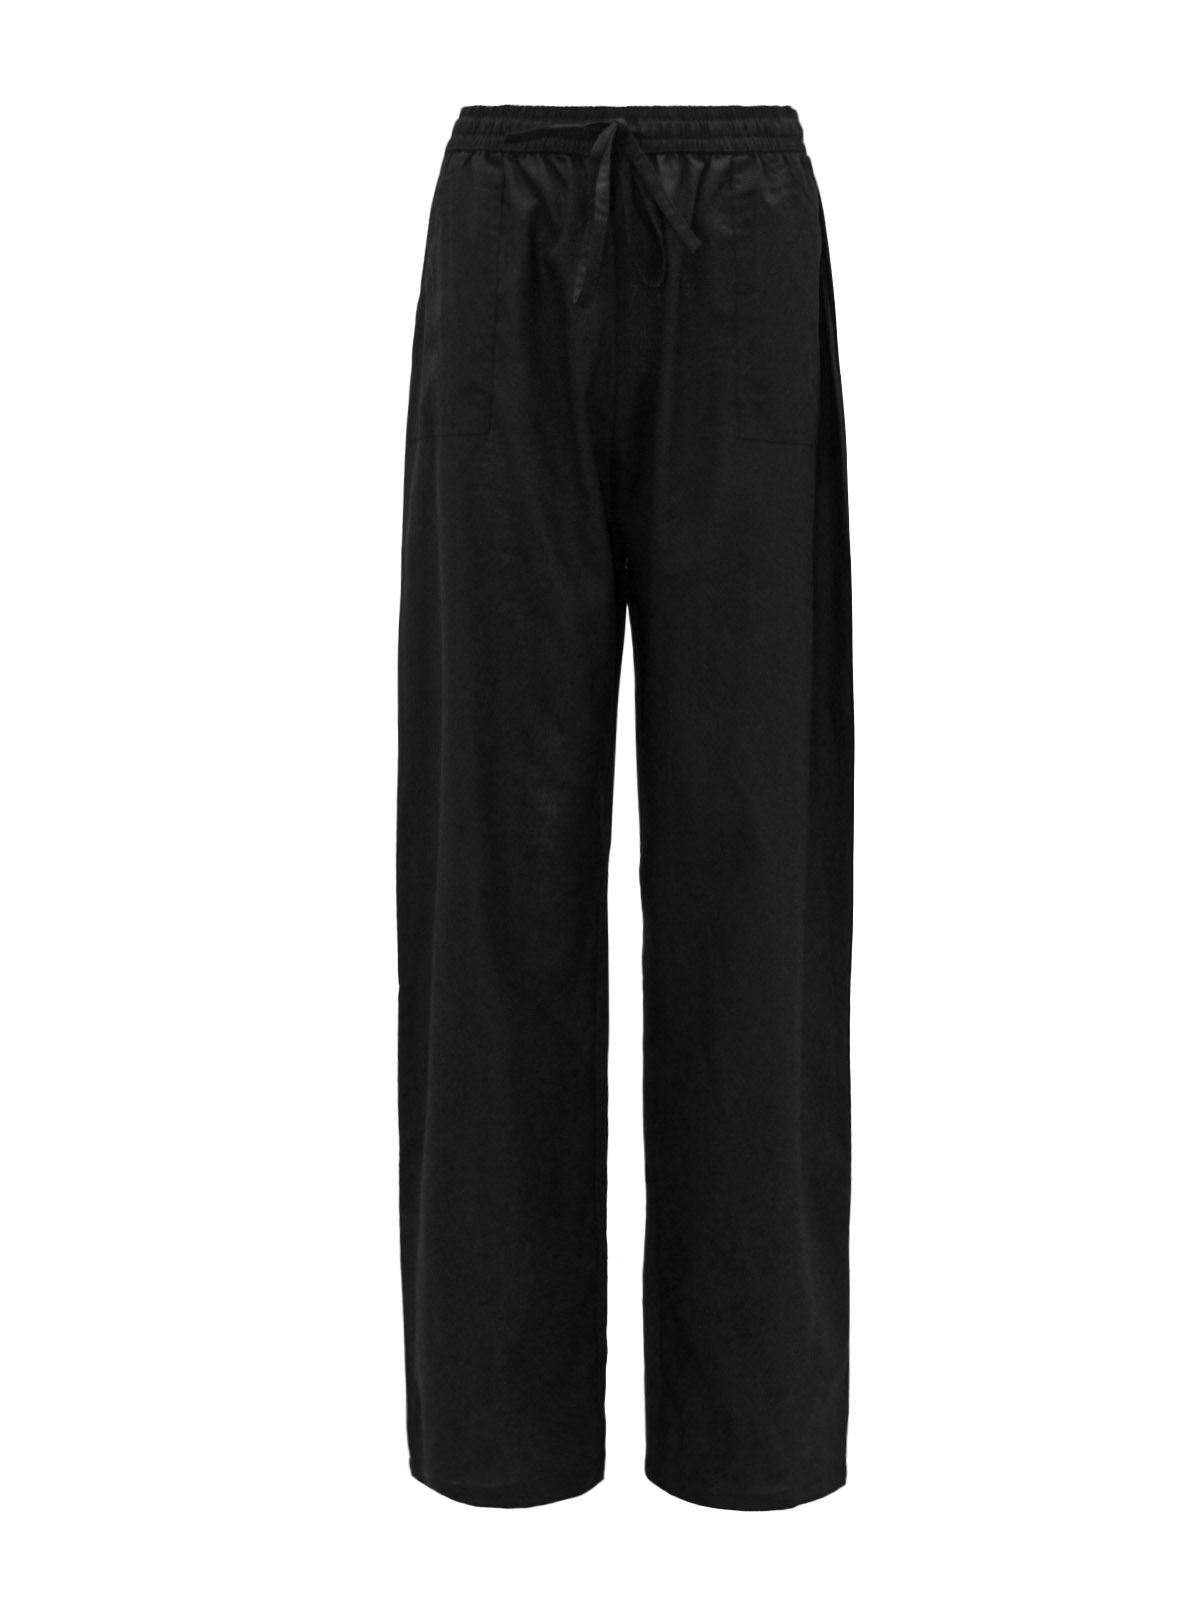 Shop our Collection of Women's Wide Leg Pants at urgut.ga for the Latest Designer Brands & Styles. FREE SHIPPING AVAILABLE!